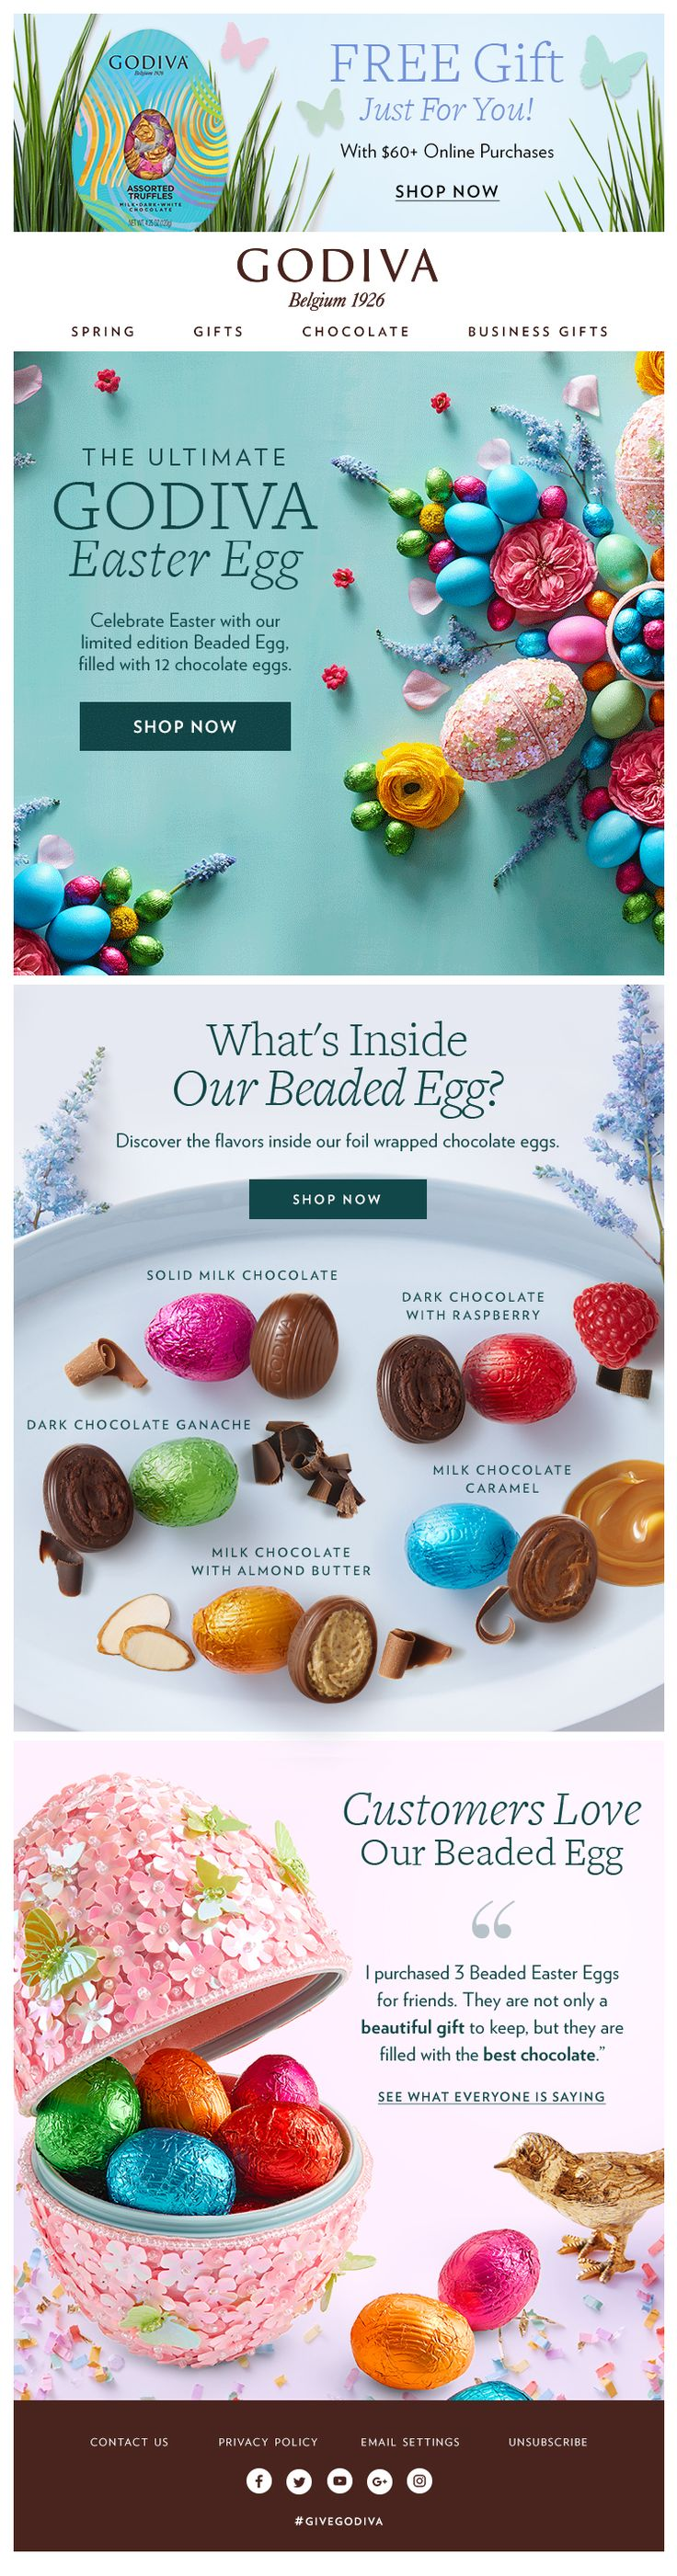 94 best easter emails images on pinterest email marketing godiva helps customers hop into spring with this bright and fresh easter inspired marketing newsletter negle